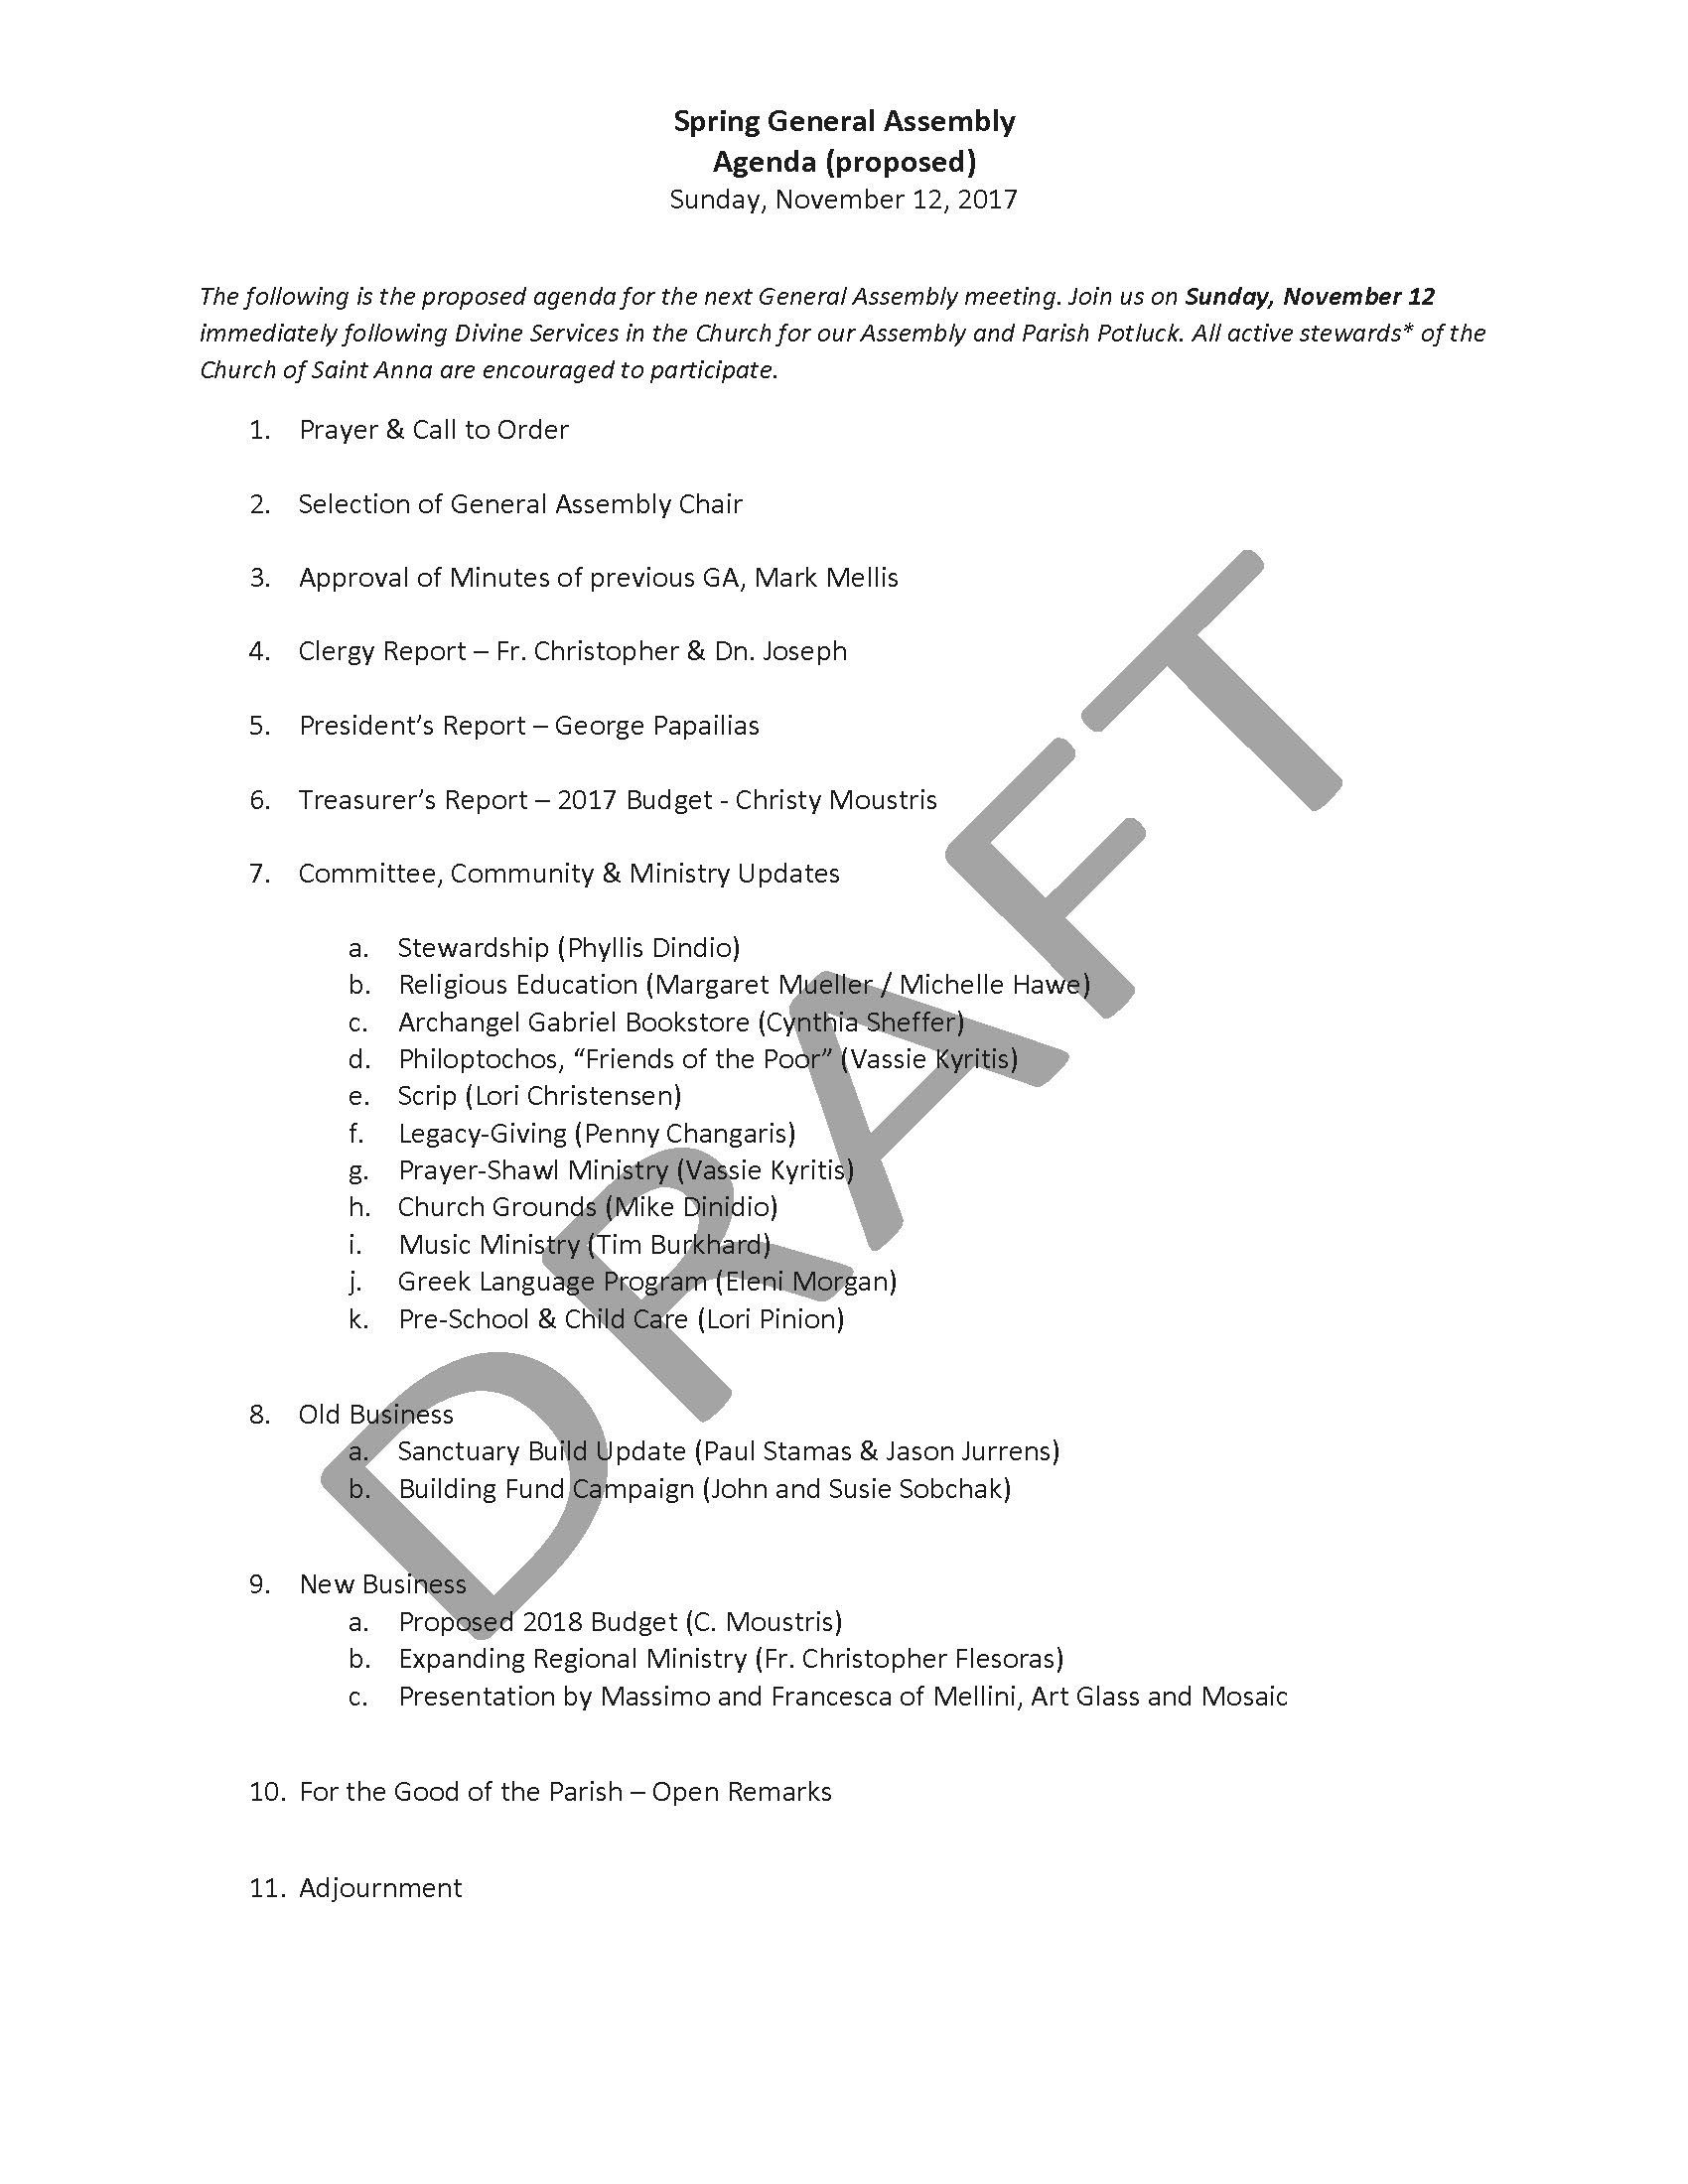 2017 Fall General Assembly - Proposed Agenda_Page_1.jpg